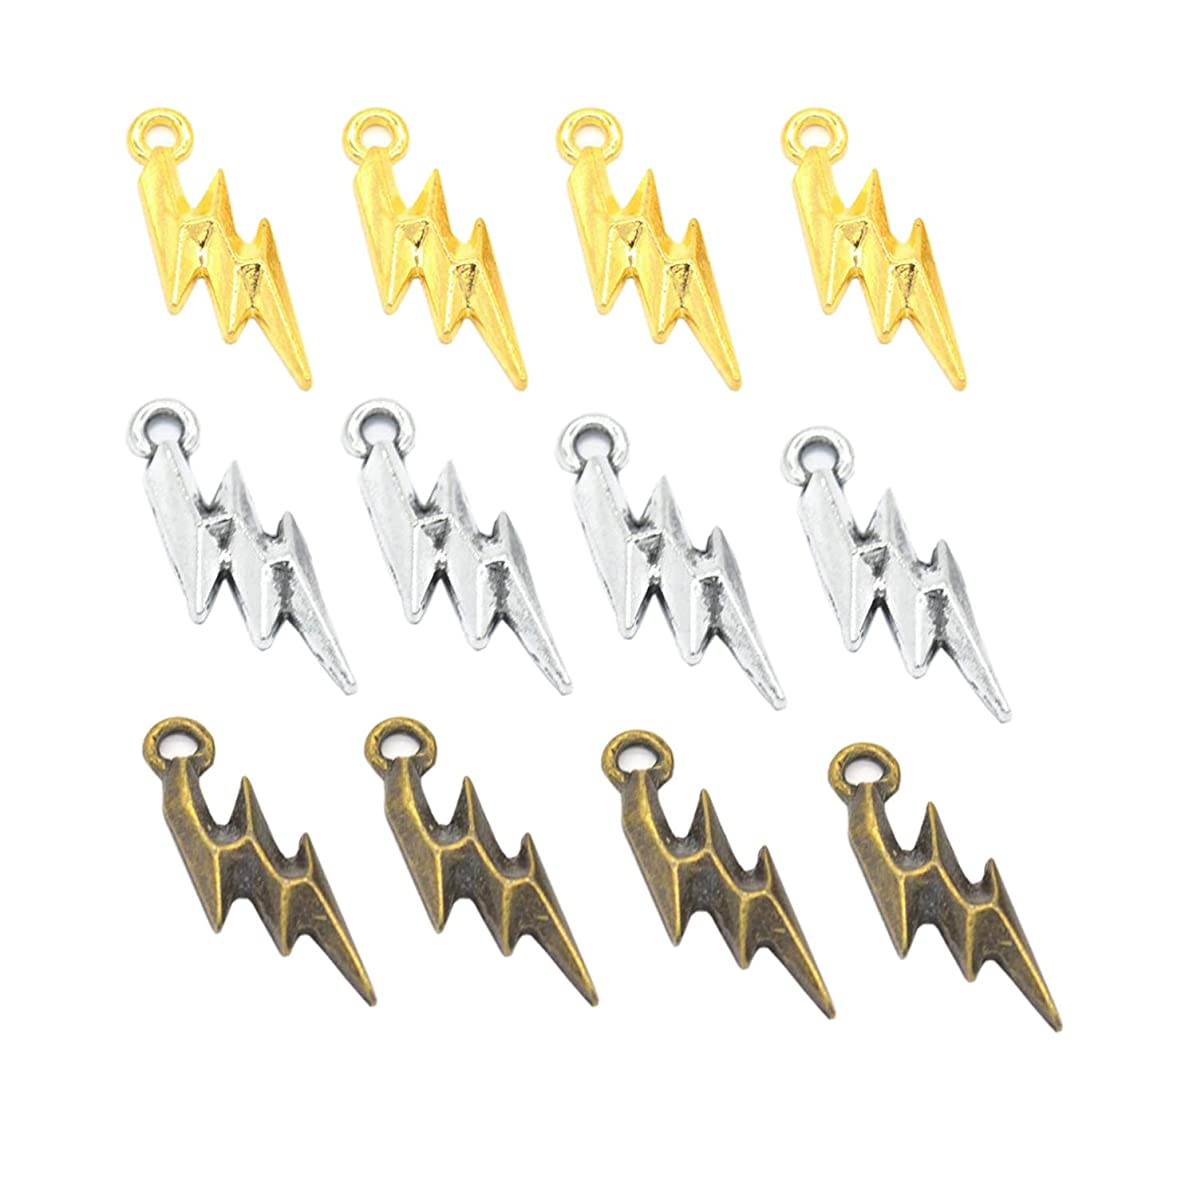 70pcs Wholesale Retro Mixed Color Lightning Bolt Strike Charm Pendant for Necklace Jewelry DIY Making